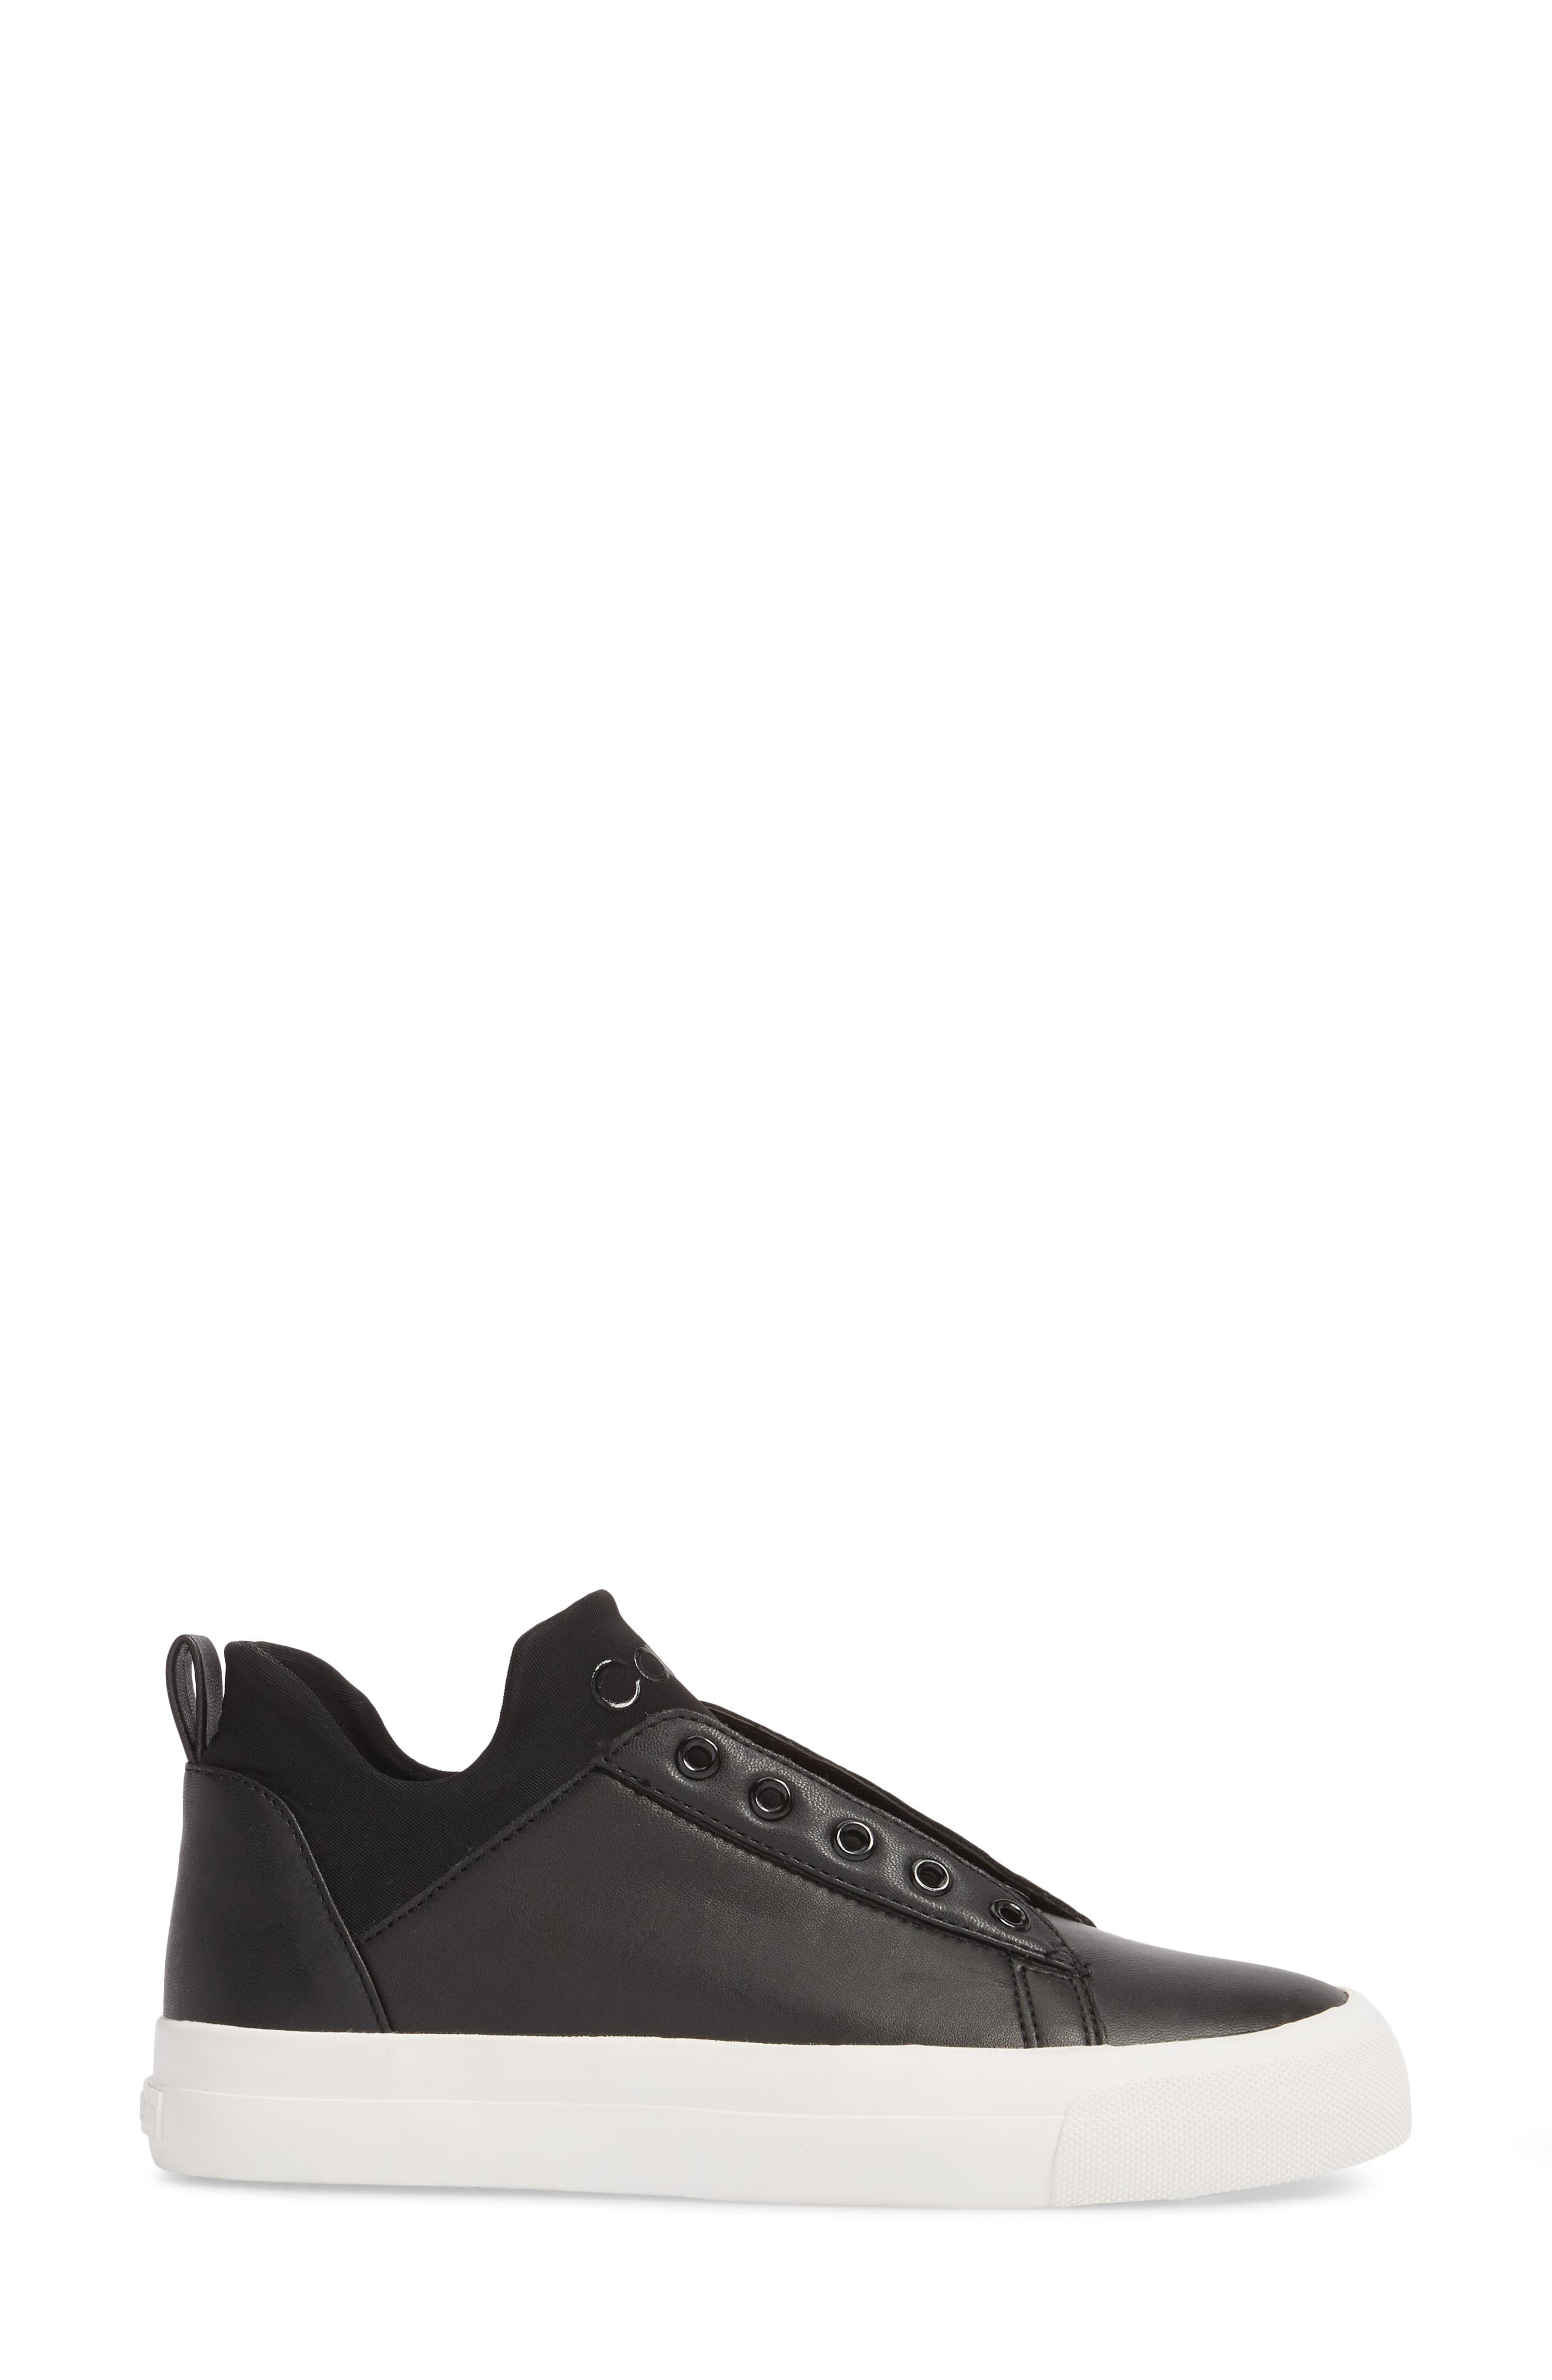 Valorie Mid Top Sneaker,                             Alternate thumbnail 3, color,                             Black Leather